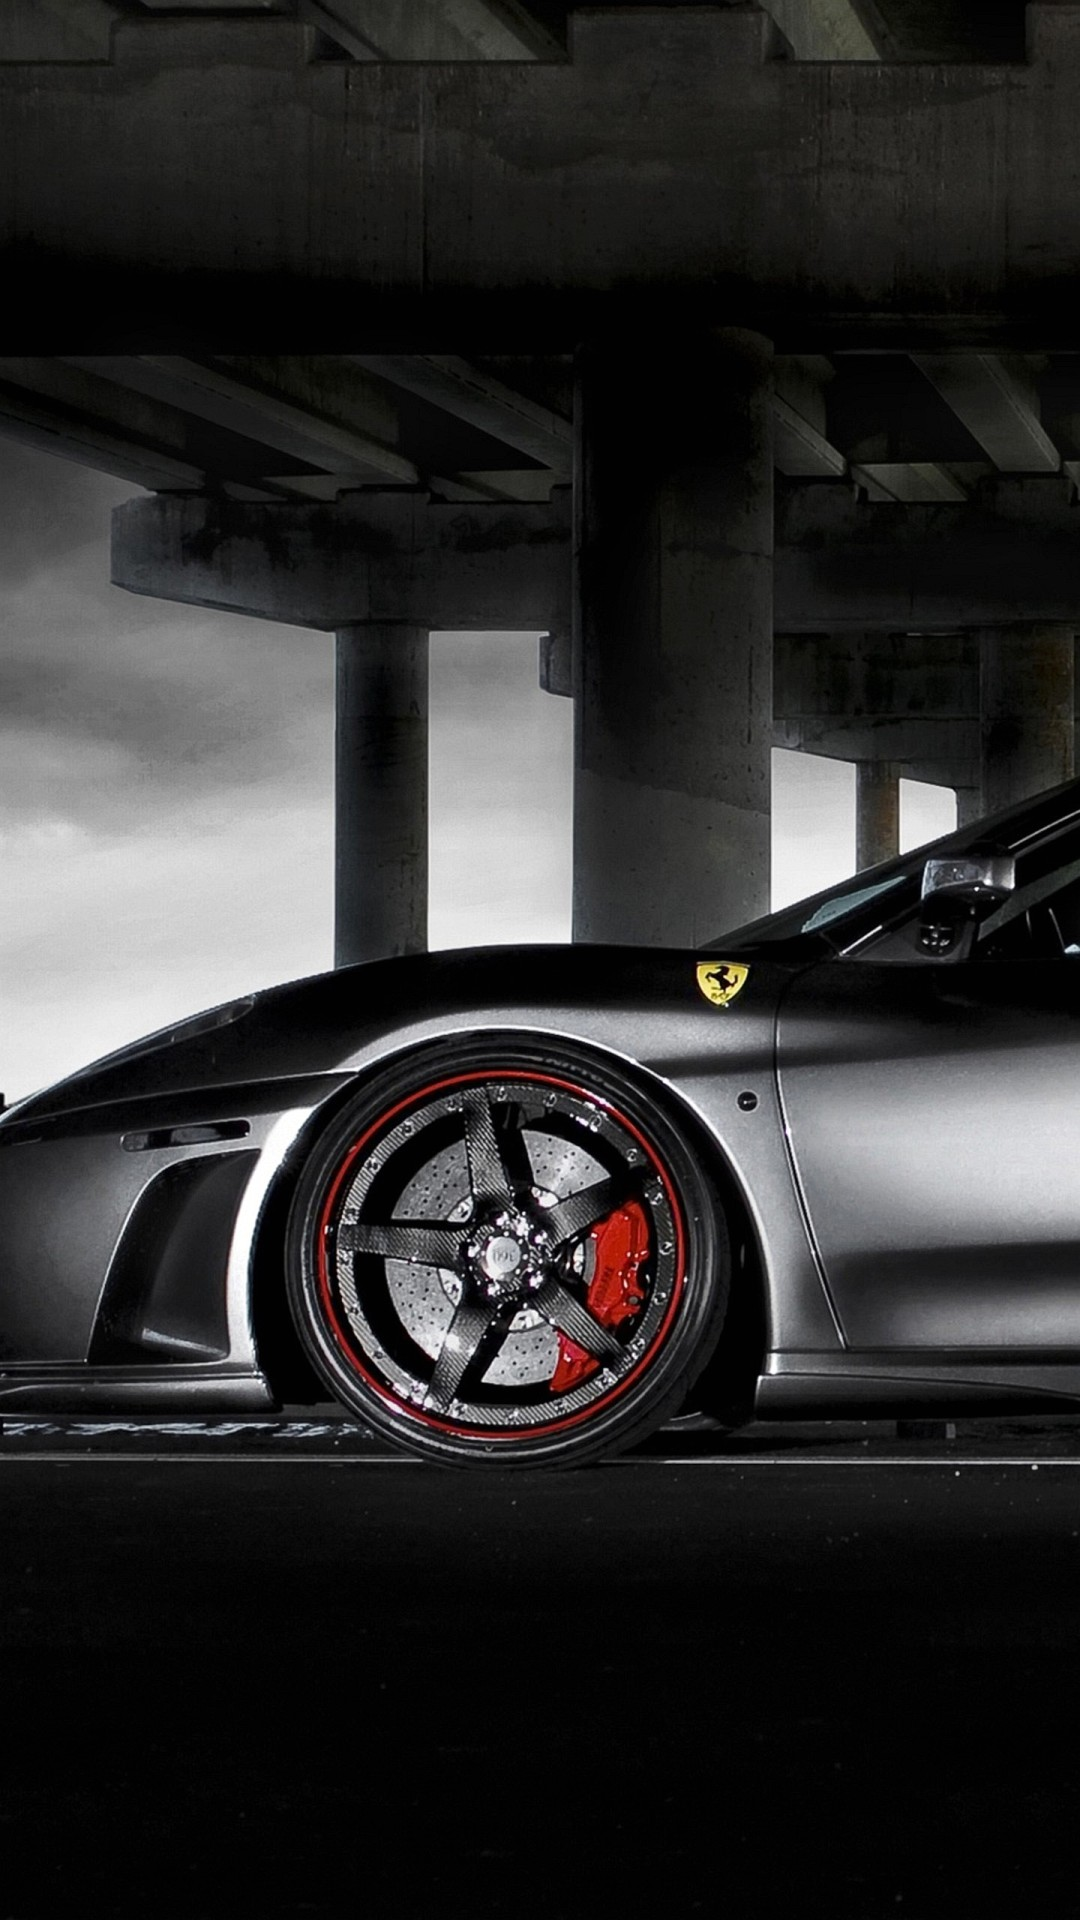 Wallpaper Iphone 6 Plus Ferrari Black 5 5 Inches   1080 x 1920 1080x1920